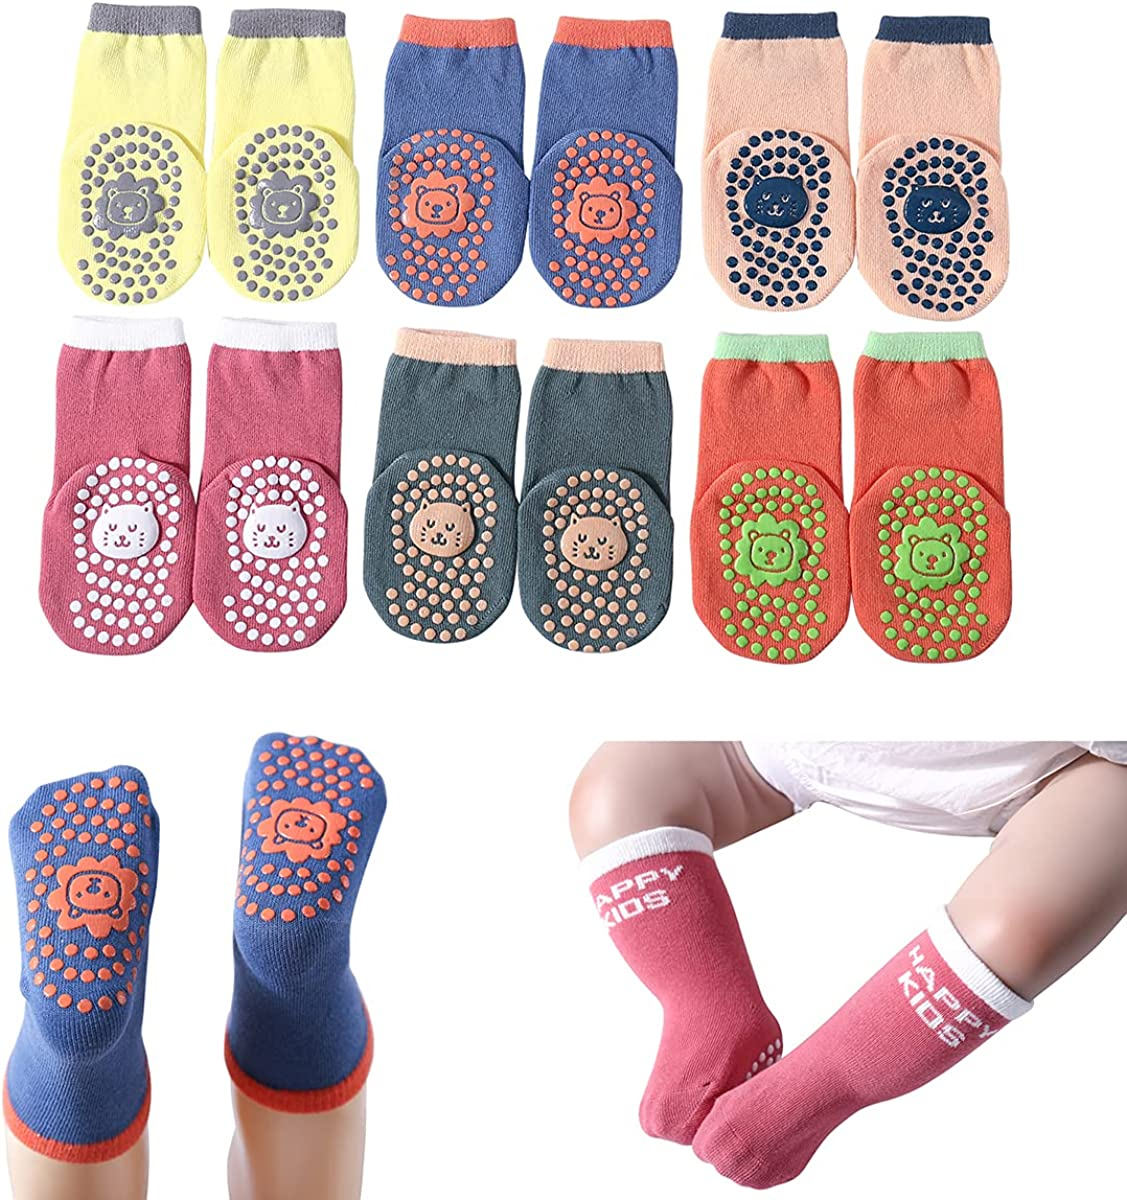 Ninecoo Baby Socks with Grips Infant and Toddler Girls/Boys Non Slip Crew Socks 6 Pairs Cotton 0-12 months and 1-3 Years